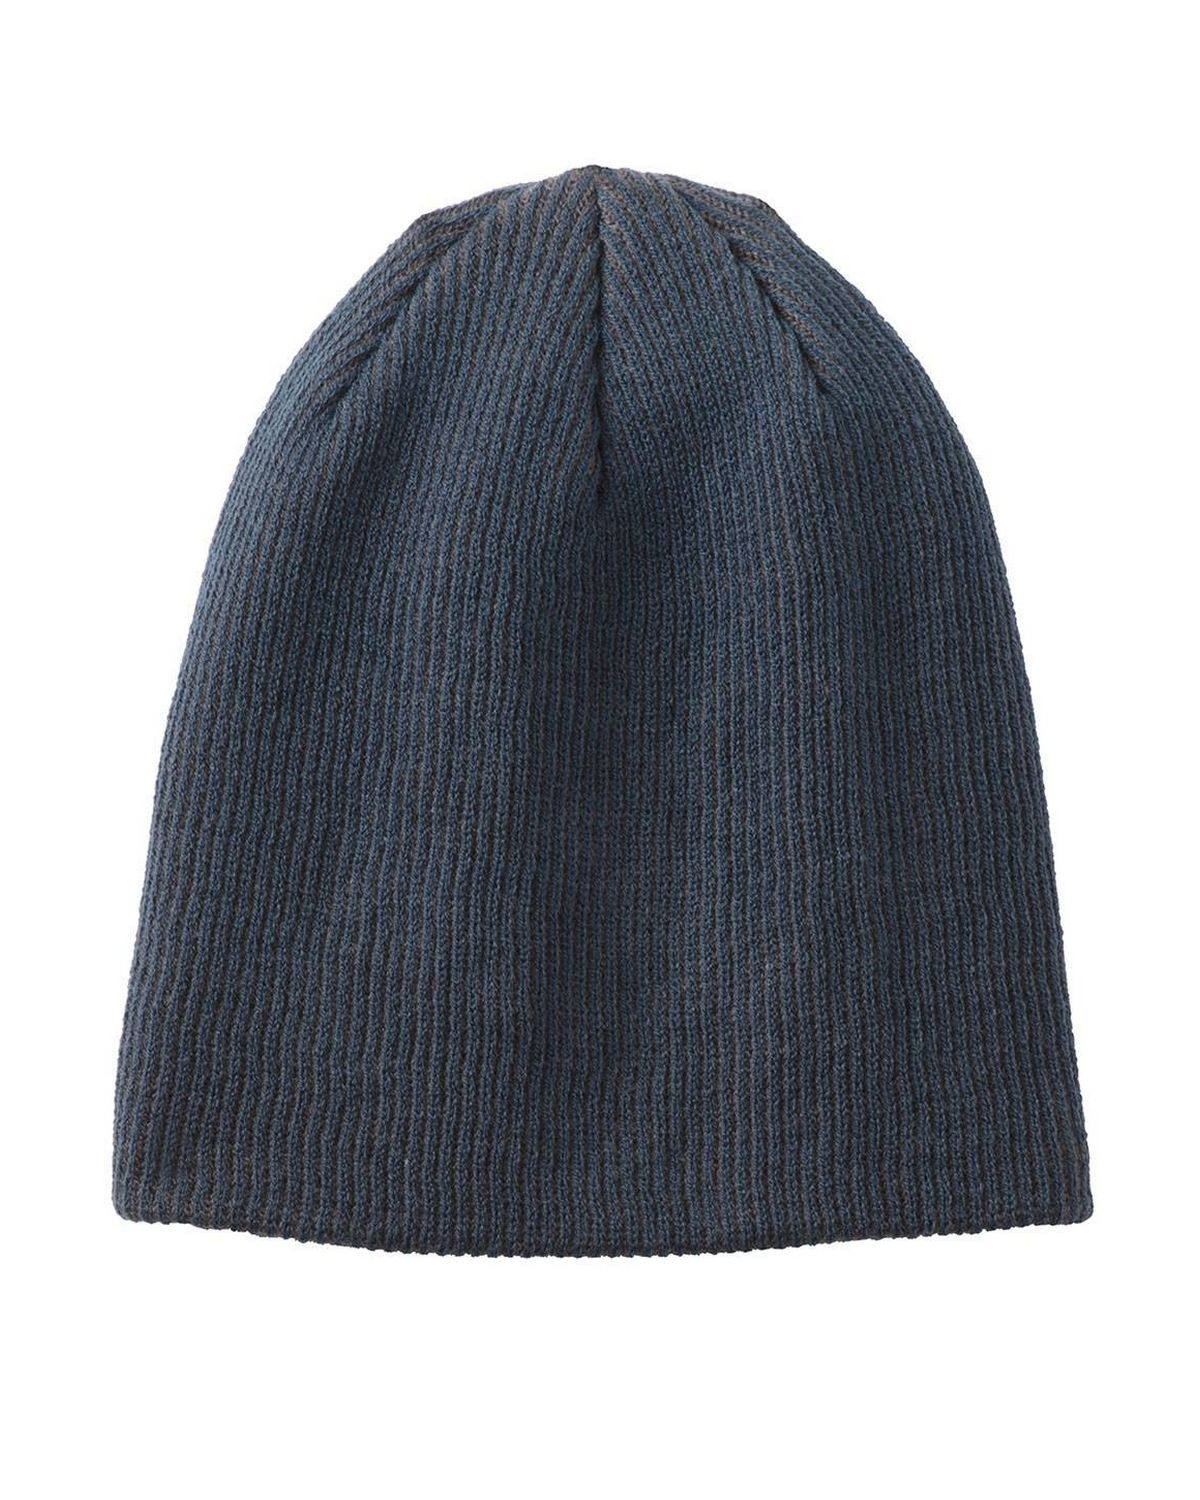 Port Authority C935 Rib Knit Slouch Beanie